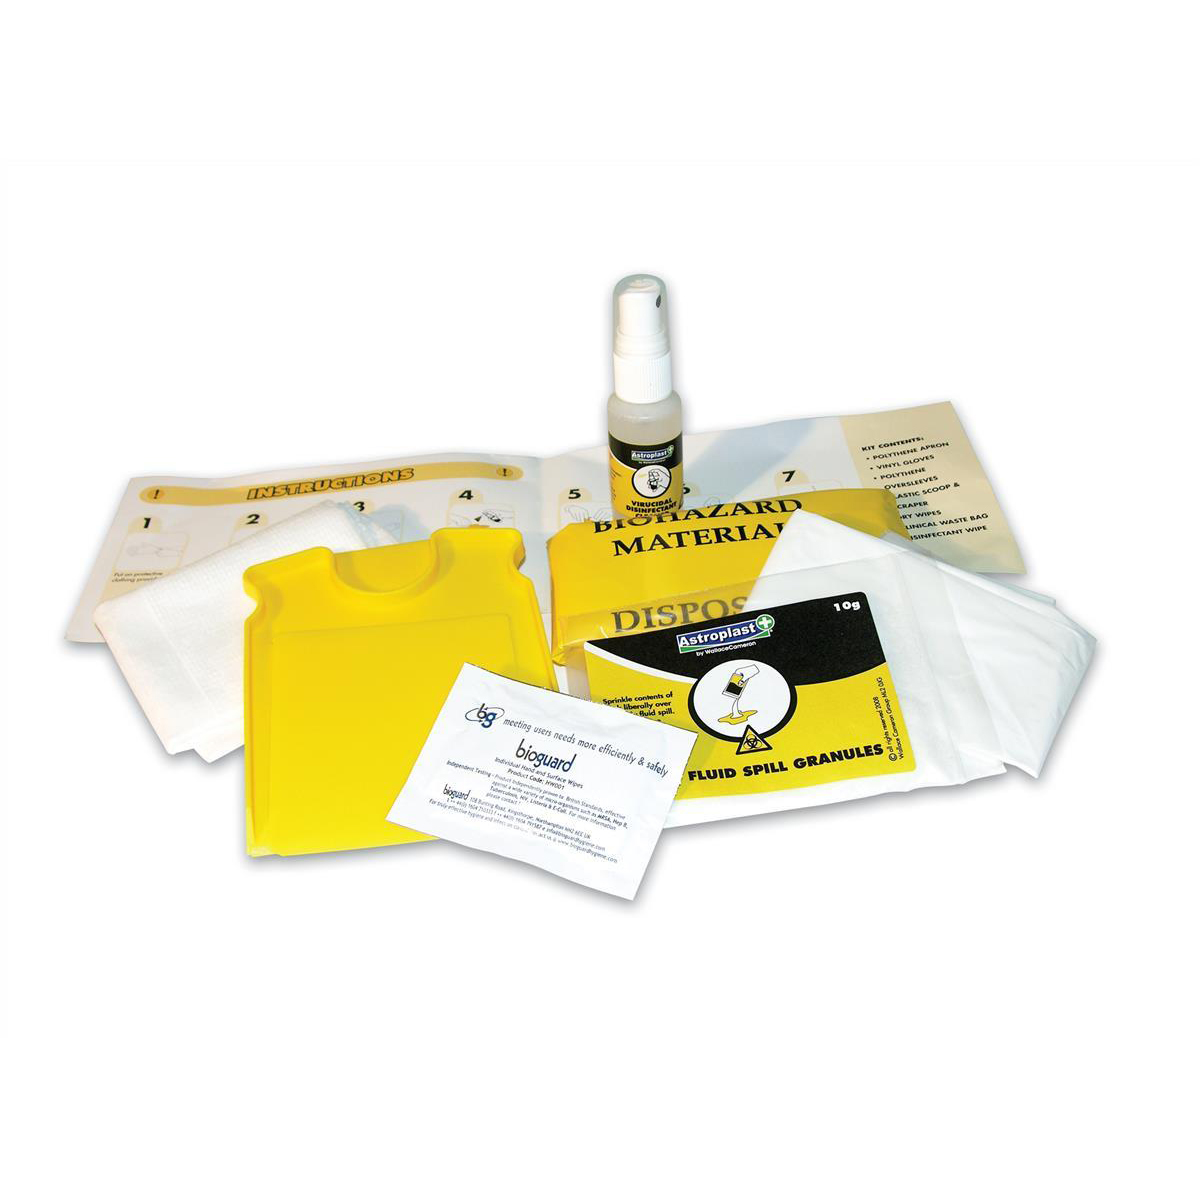 First aid kit Wallace Cameron Astroplast Piccolo 2Application Refill for Body Fluid Kit Anti-Cross Infection Ref1012048